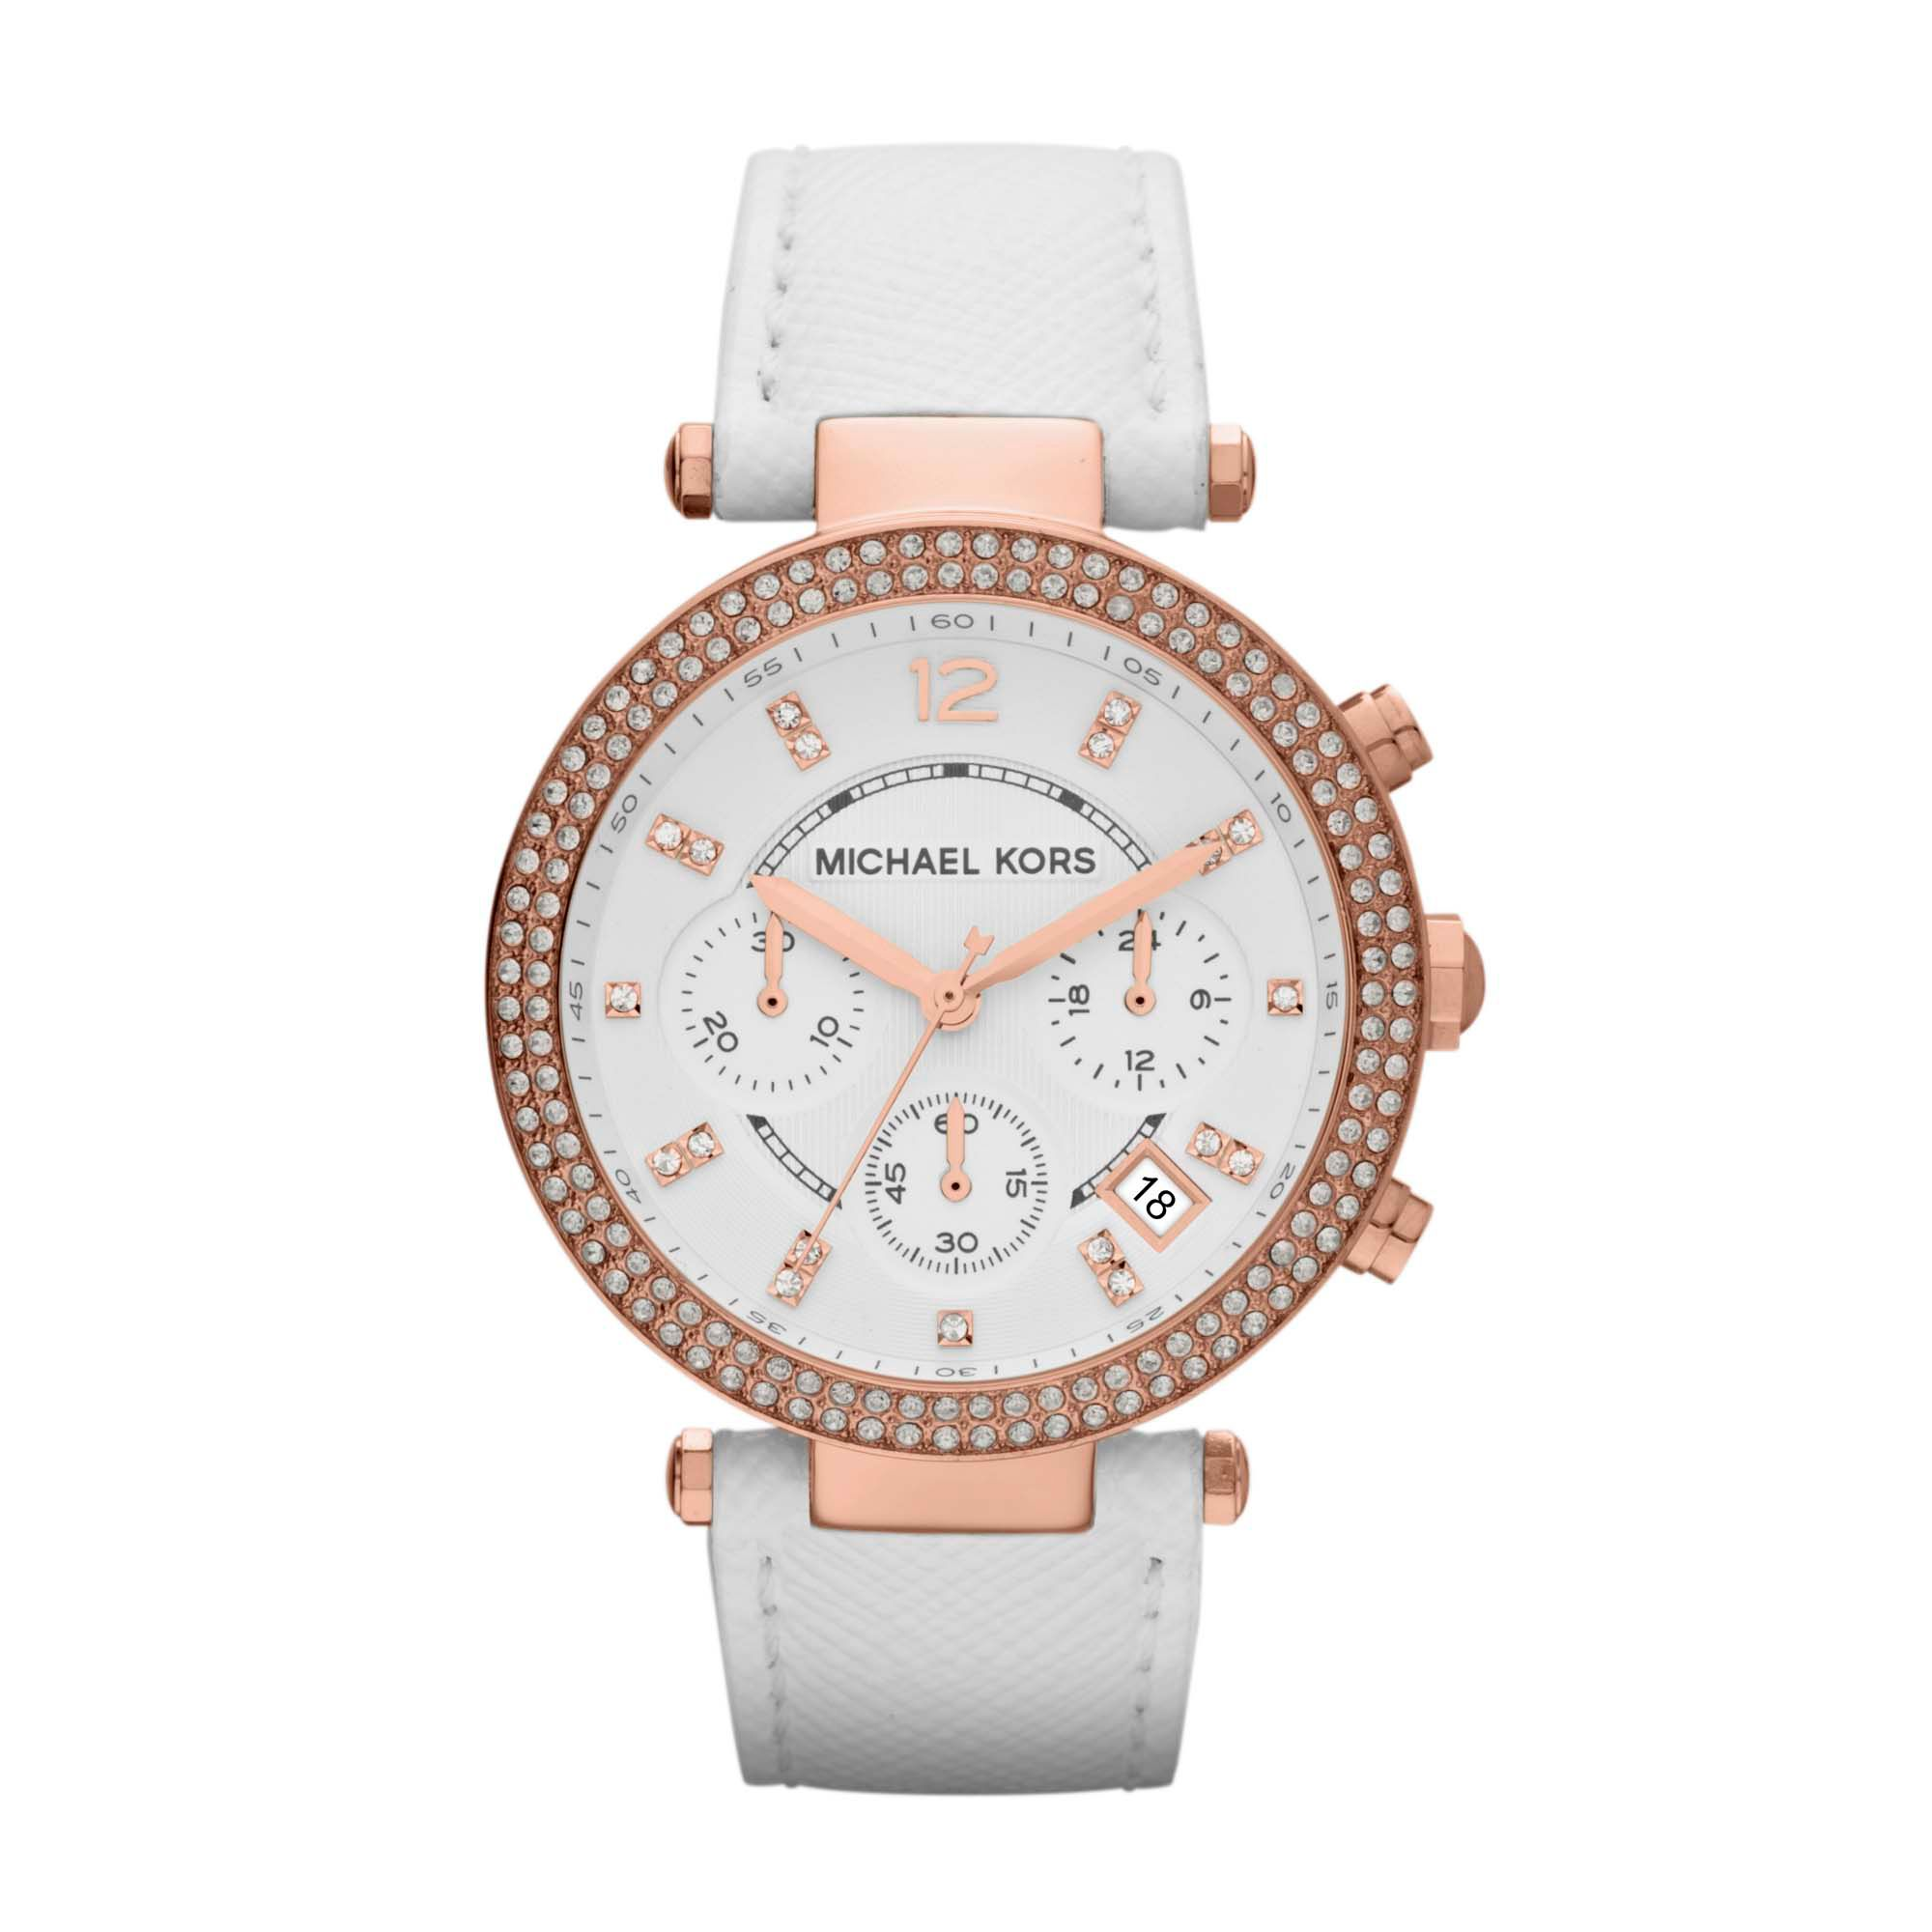 MK2281 white genuine leather ladies watch